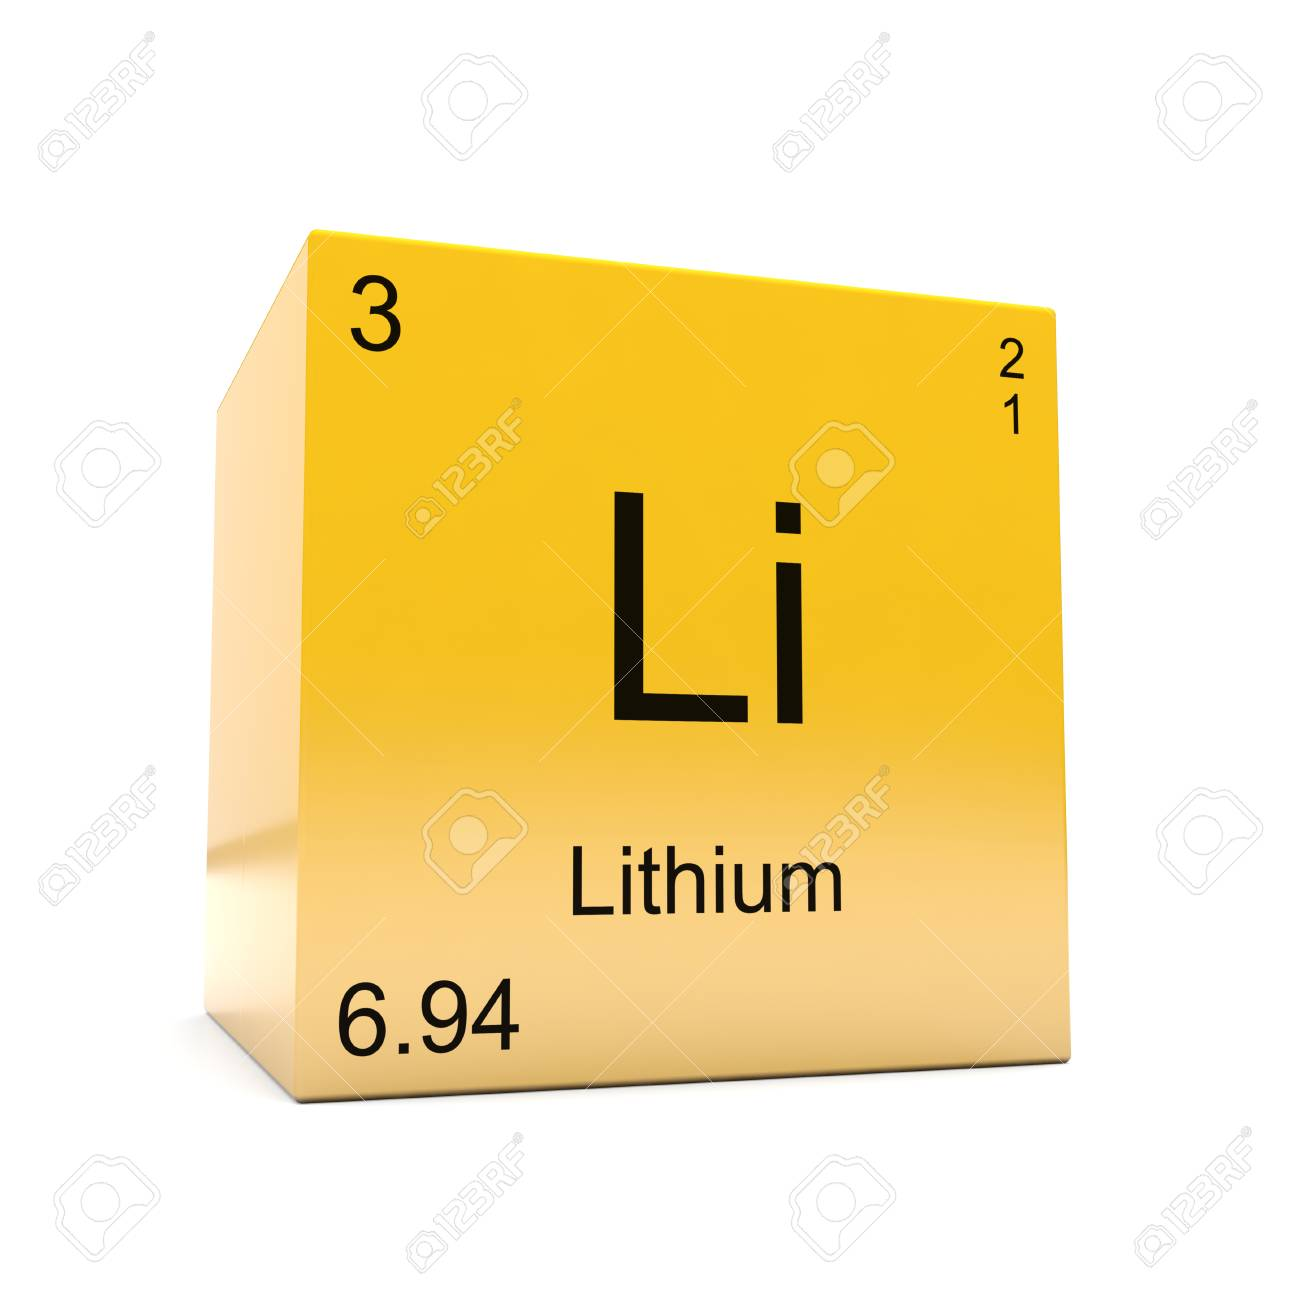 Lithium chemical element symbol from the periodic table displayed lithium chemical element symbol from the periodic table displayed on glossy yellow cube stock photo urtaz Choice Image